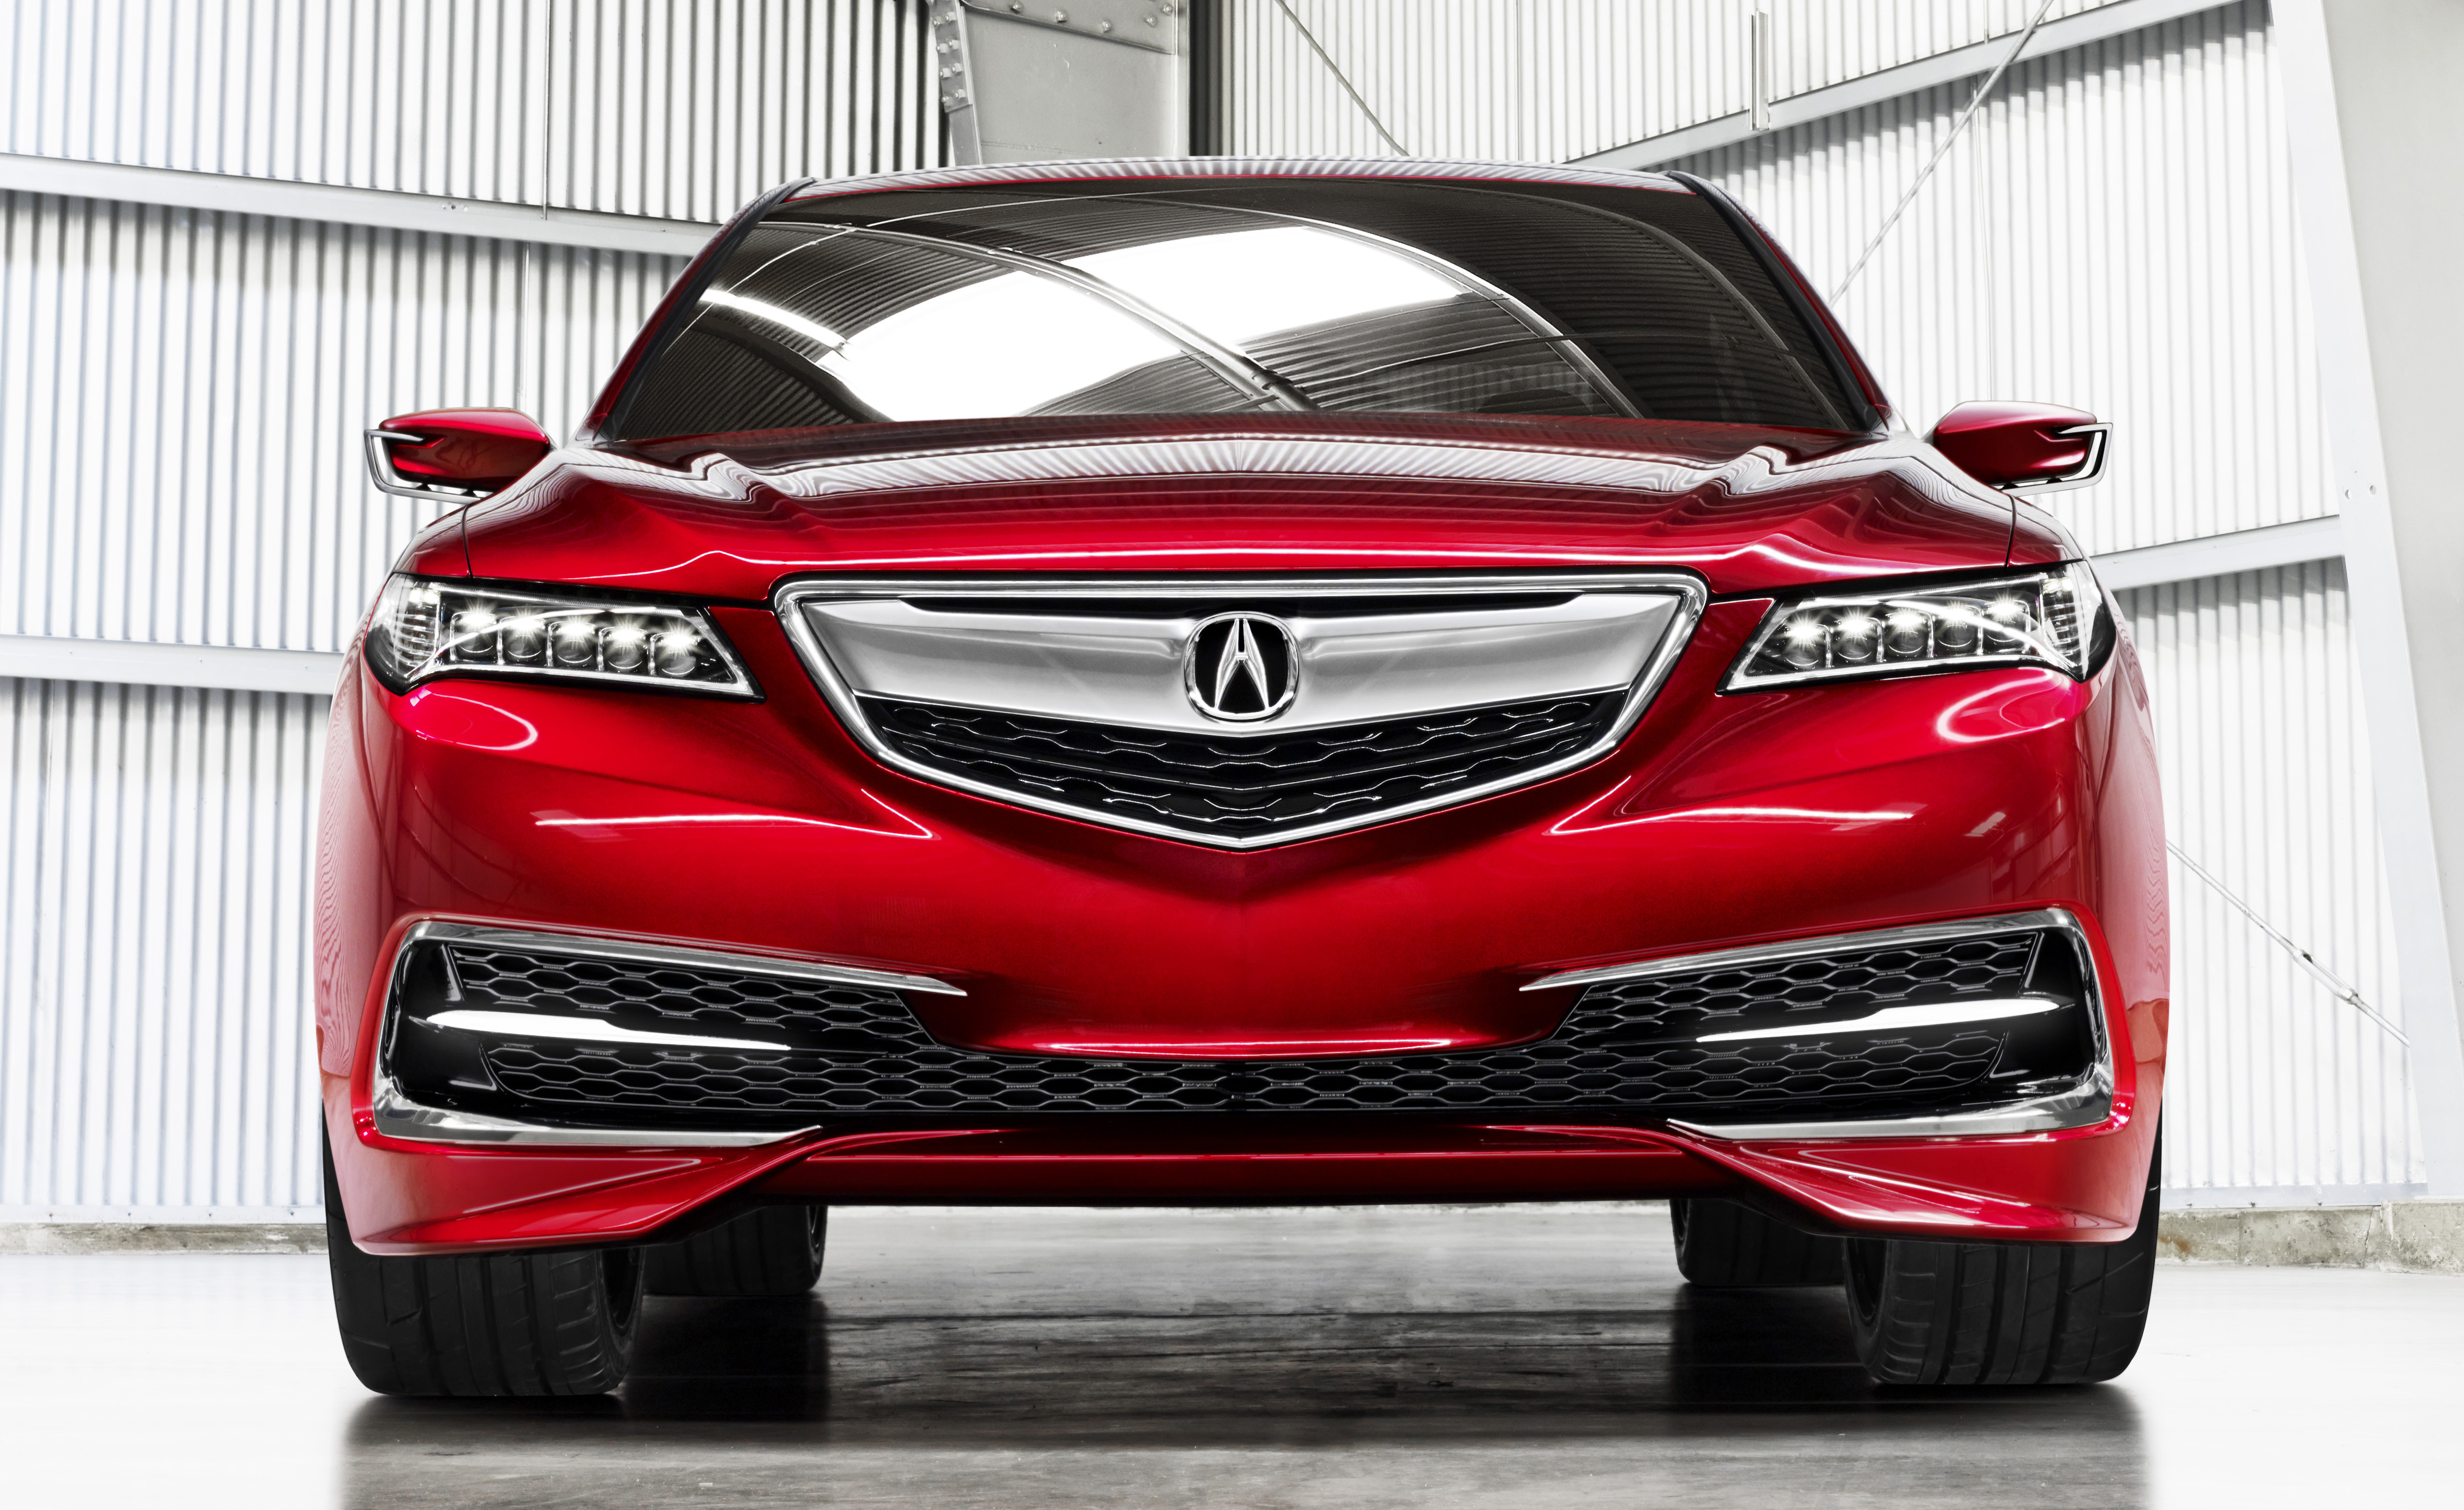 acura tlx prototype previews all new 2015 model. Black Bedroom Furniture Sets. Home Design Ideas